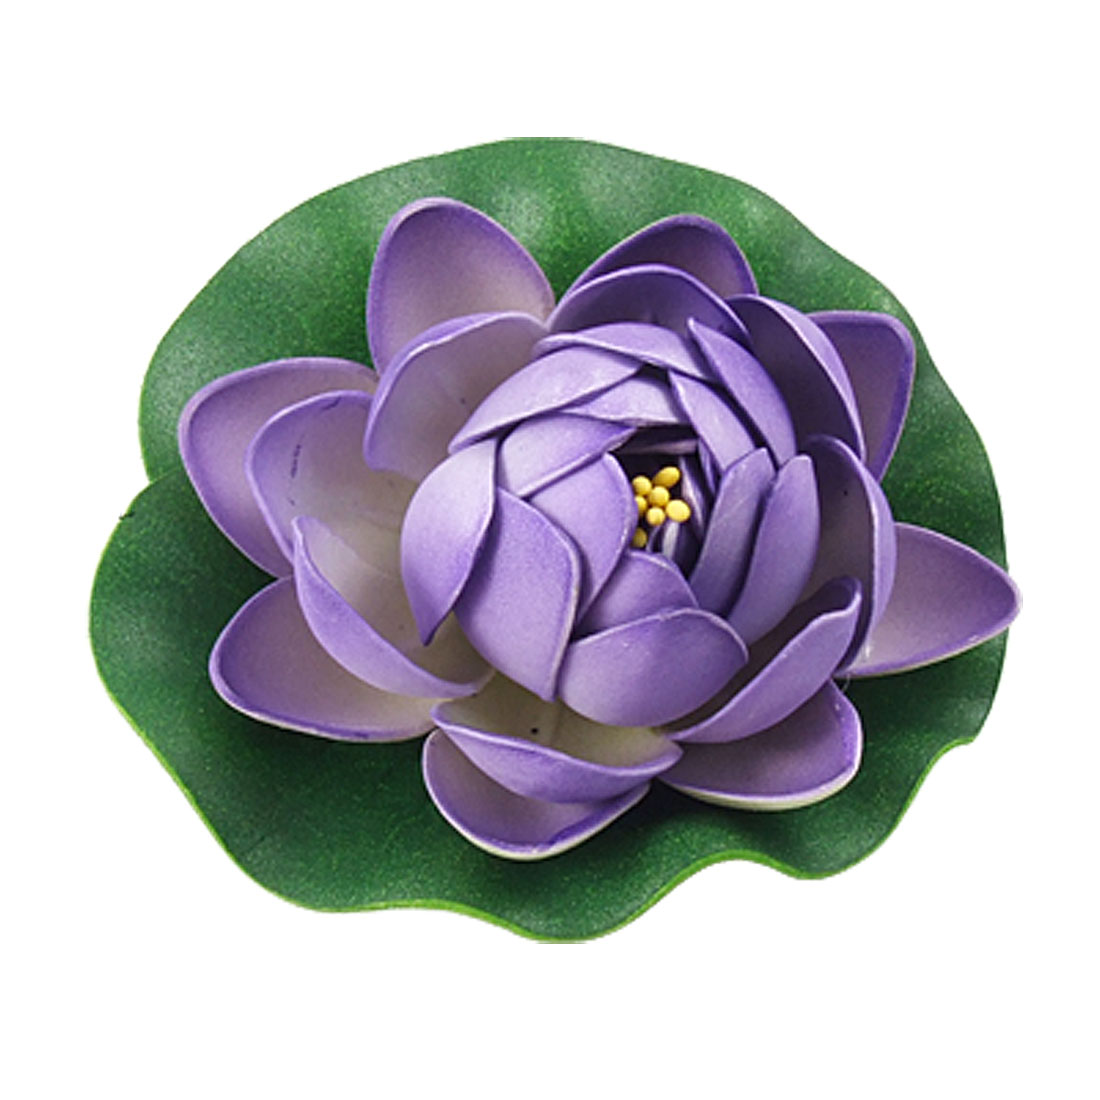 "4"" Dia Emulational Lotus Flower Floating Foam Plant Decor Purple Green for Aquarium"